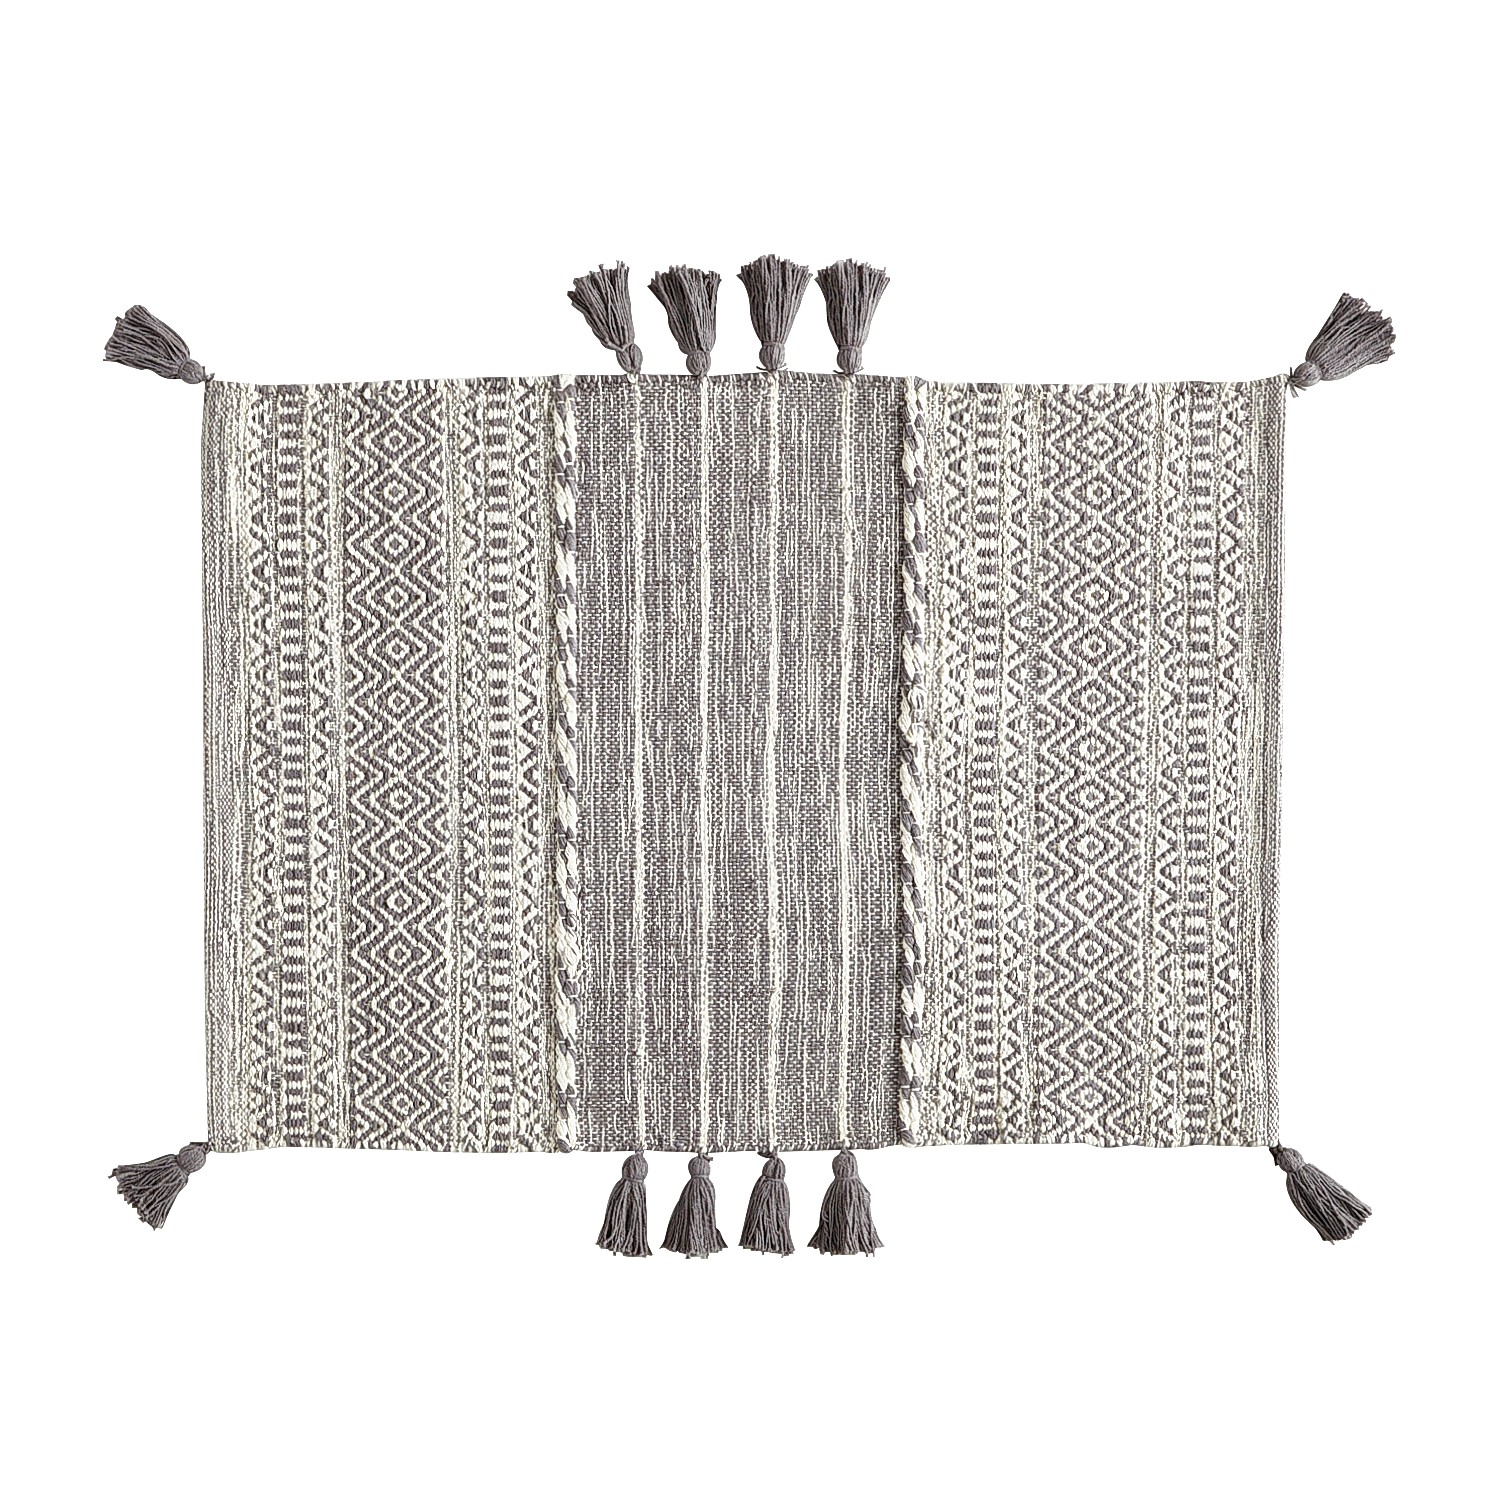 Blended Charcoal 2x3 Rug with Tassels